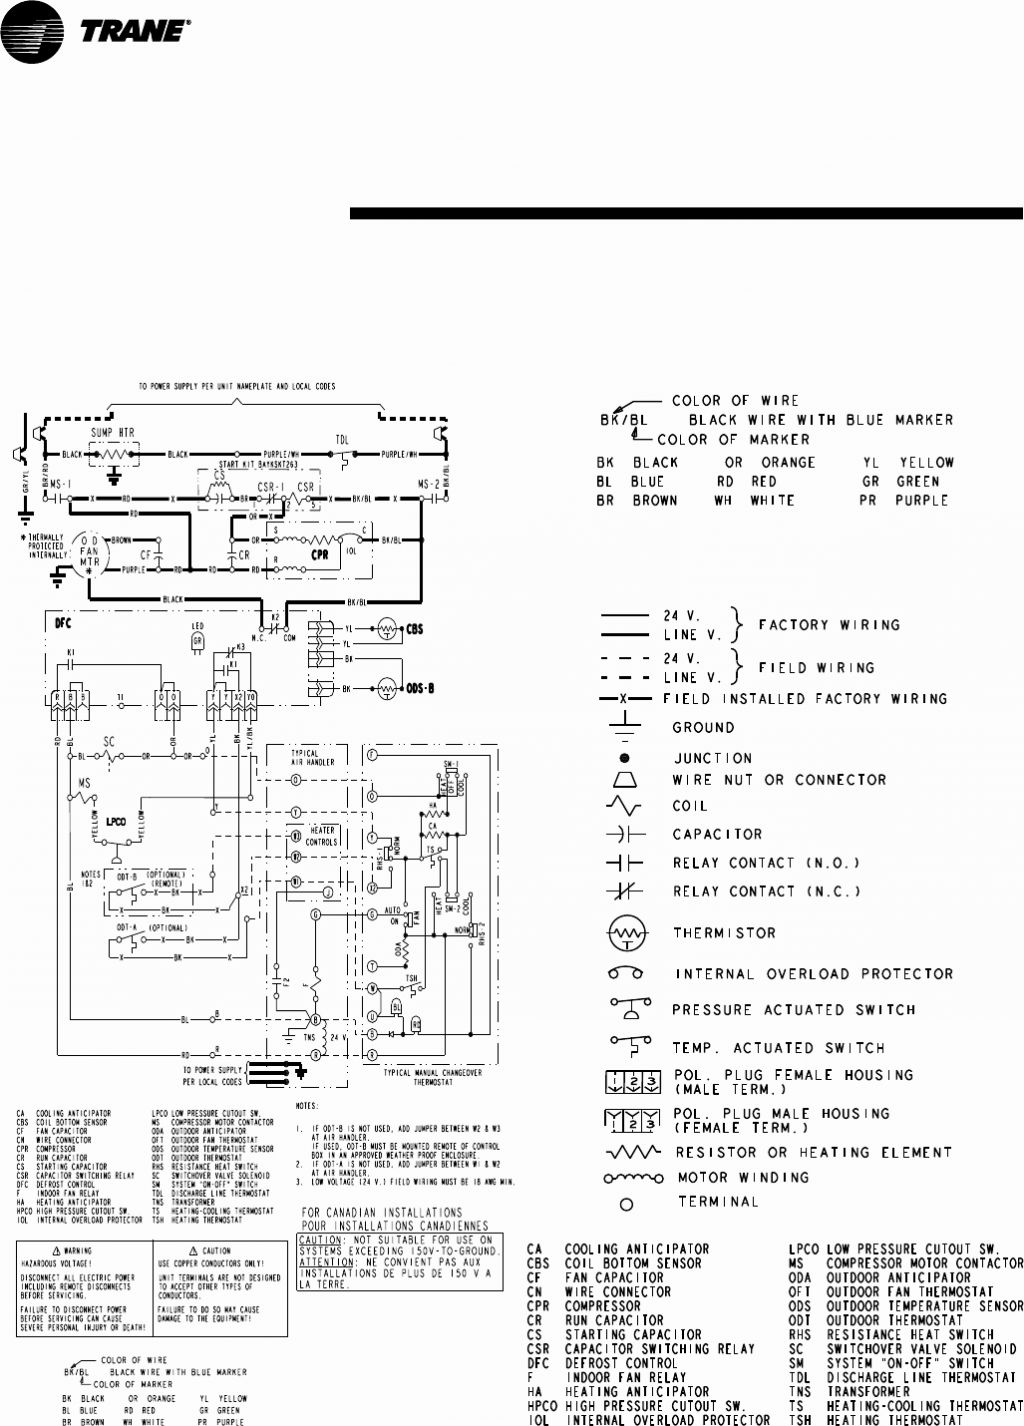 trane wsc060 wiring diagram Download-Trane Wiring Diagram Awesome Trane Wsc060 Wiring Diagram 27 Wiring Diagram 20-f